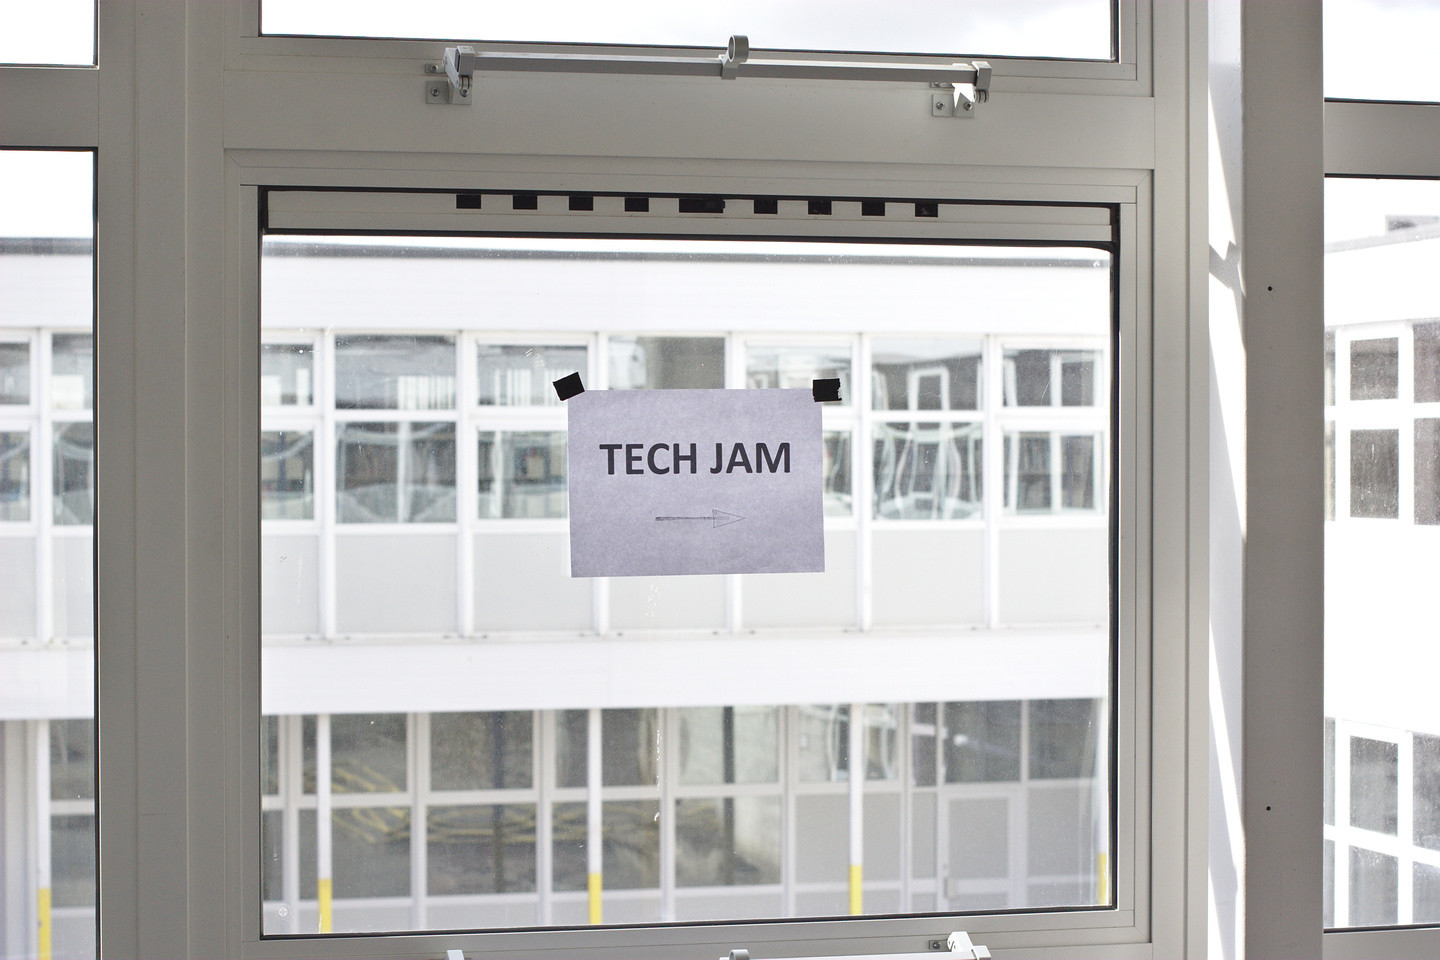 Photo from March's Tech Jam